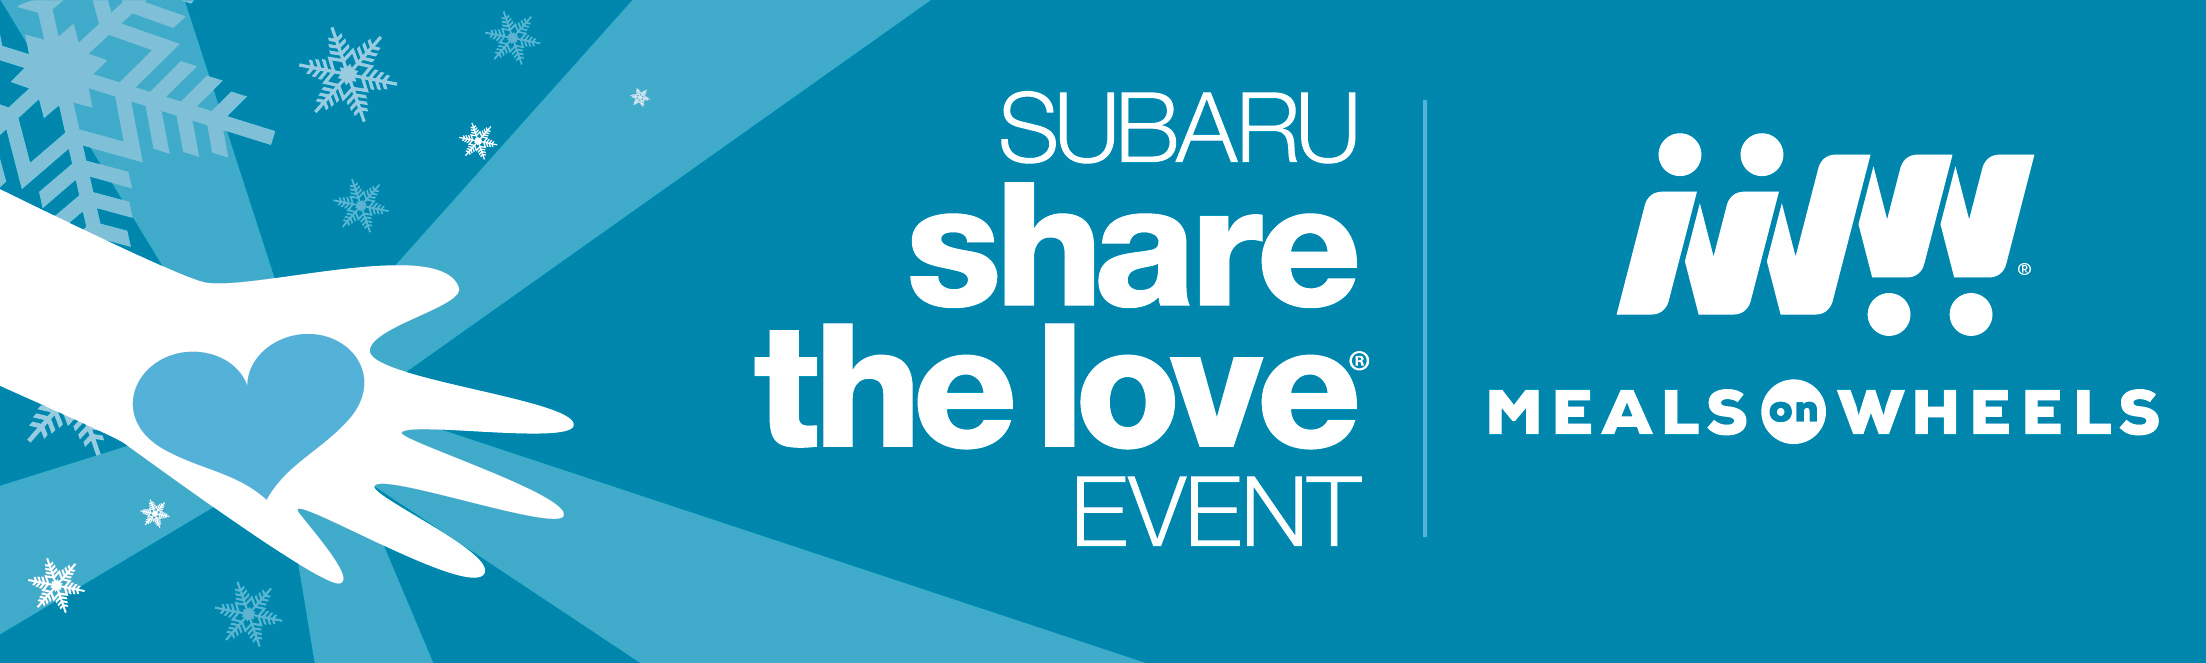 2017 Subaru Share the Love Event with Meals on Wheels